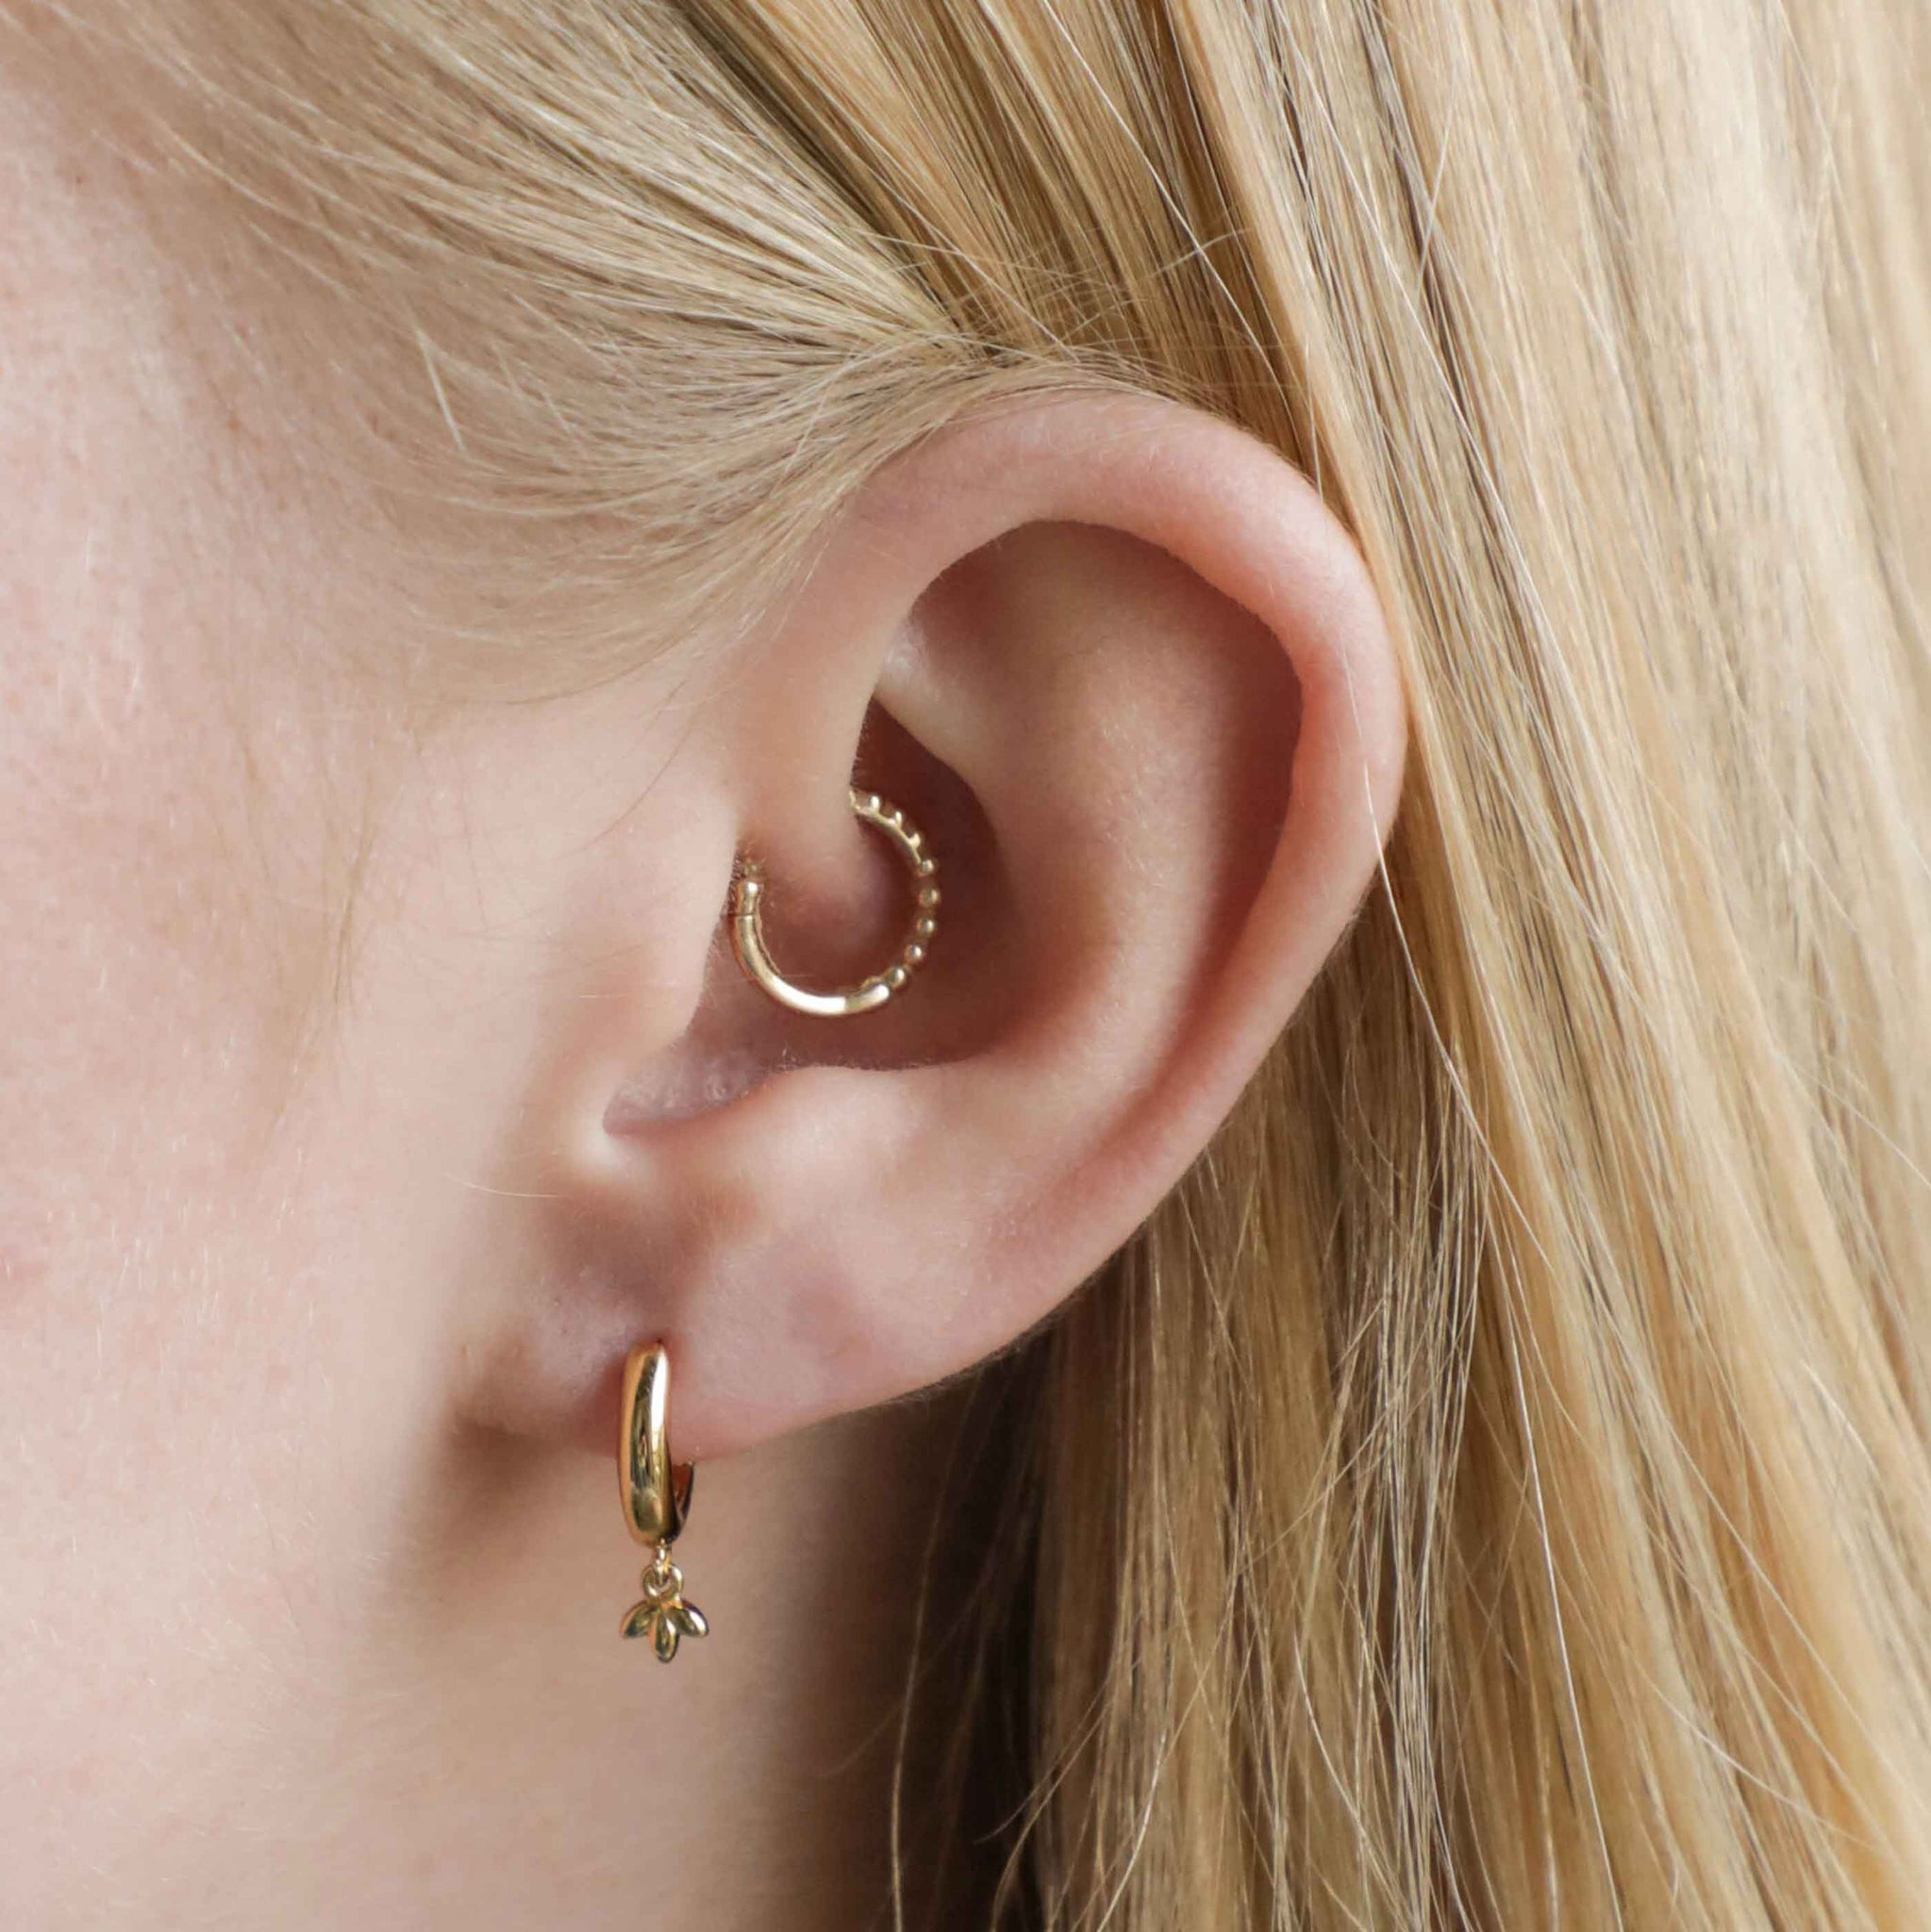 Botanist Pendant Hoops in Gold worn in first lobe piercing